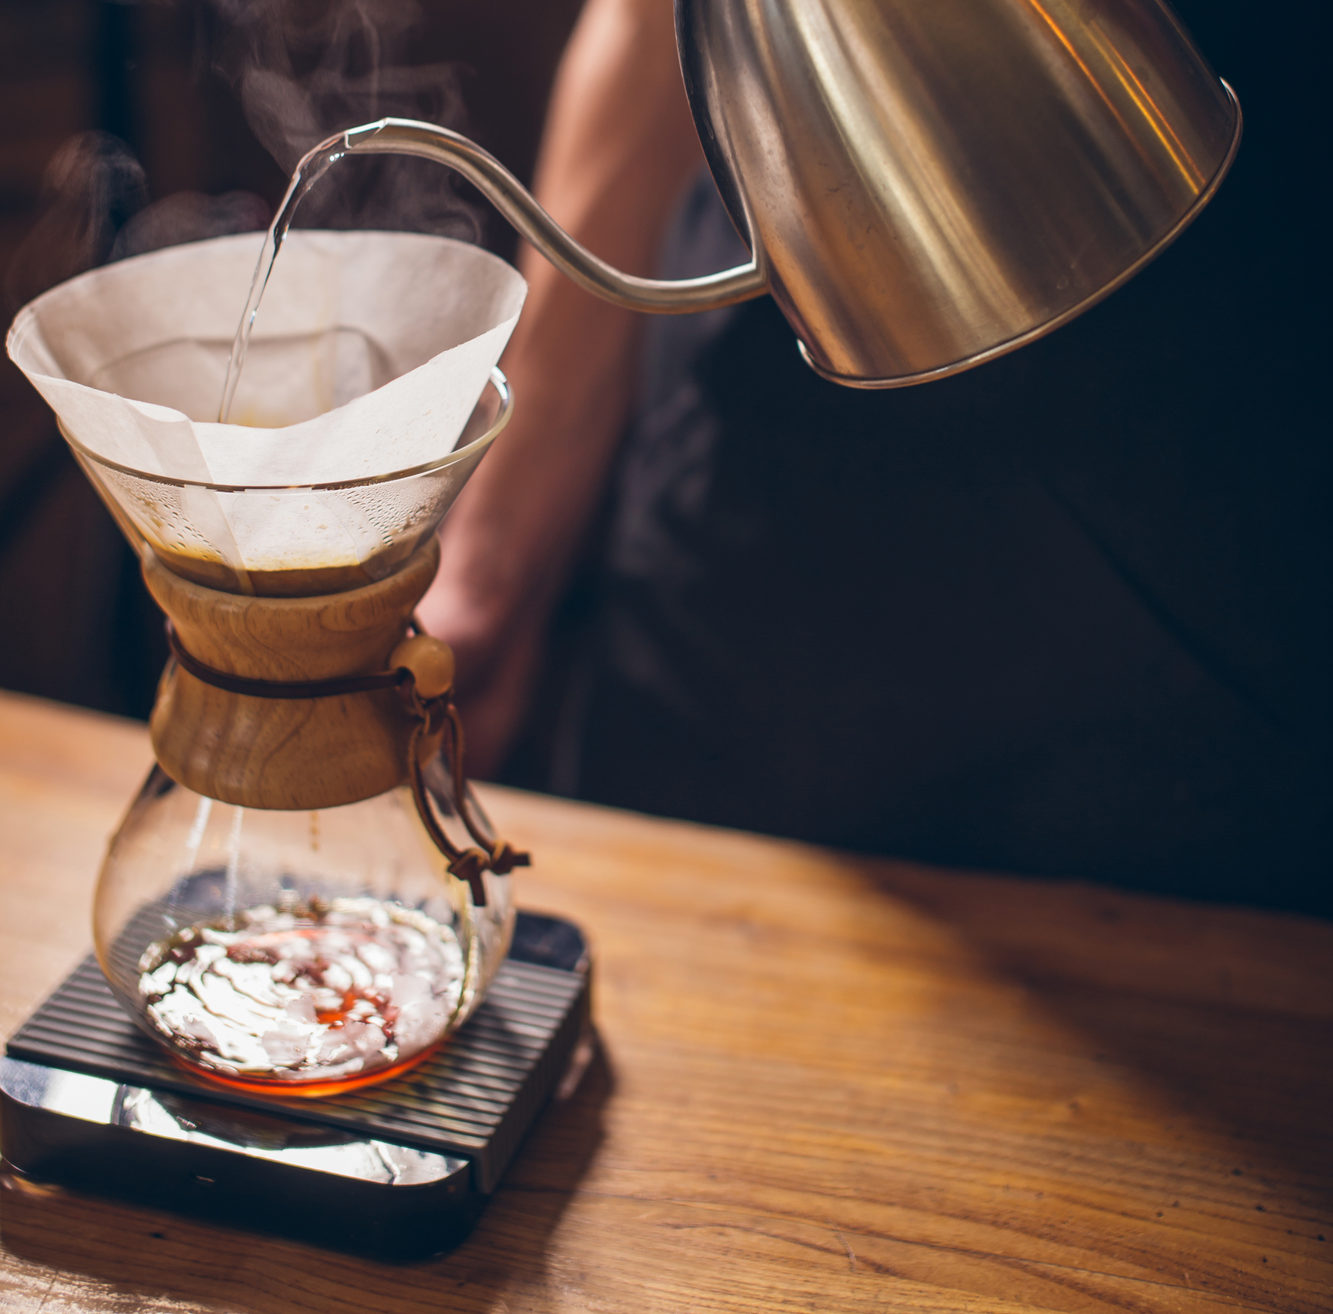 Equipment you need to make great coffee